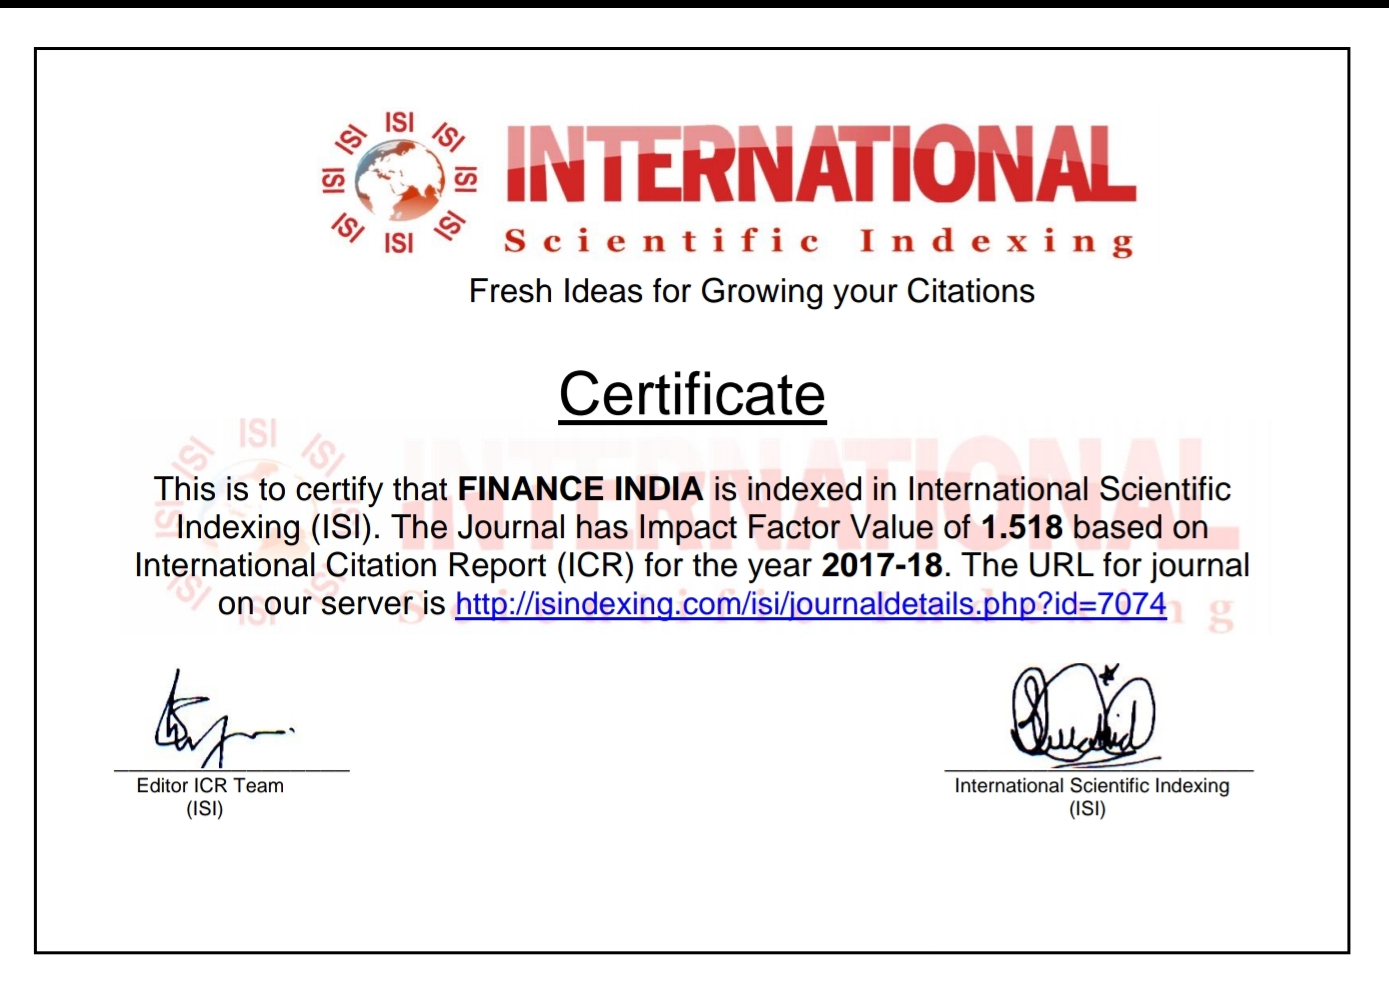 The International Scientific Indexing ISI Indexation